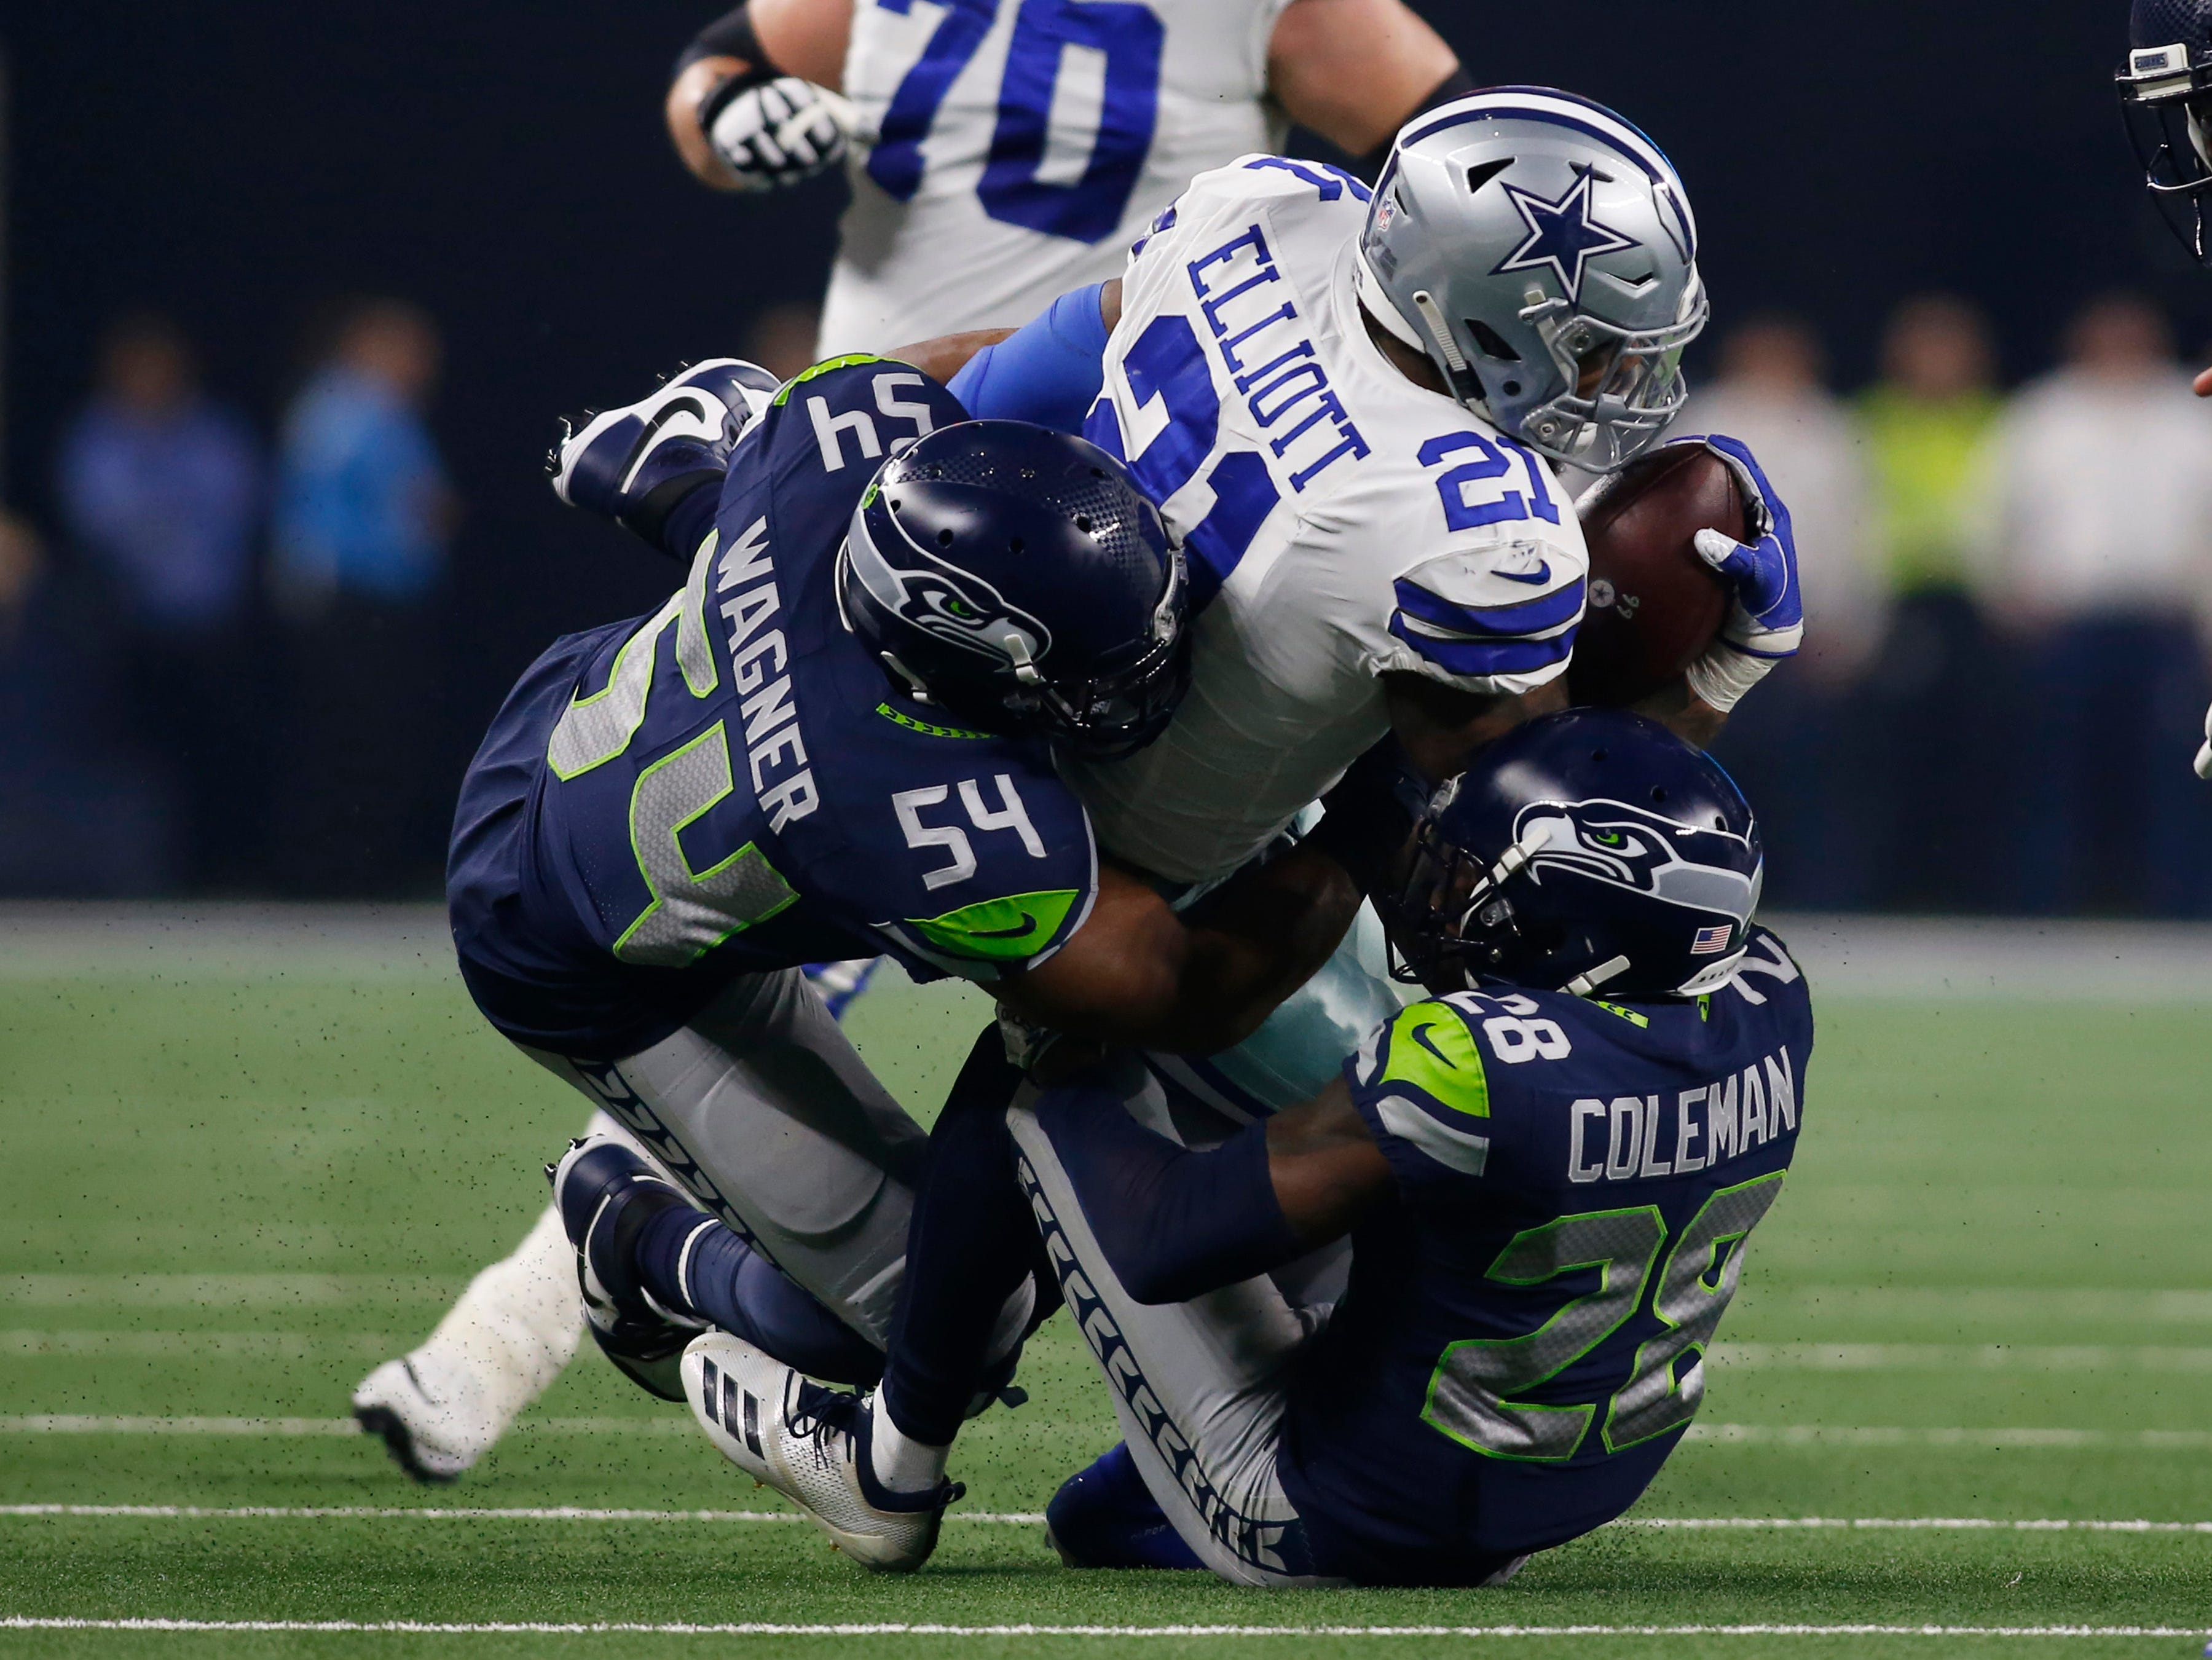 Dallas Cowboys running back Ezekiel Elliott (21) is tackled by Seattle Seahawks cornerback Justin Coleman (28) and linebacker Bobby Wagner (54) in the first quarter at AT&T Stadium.